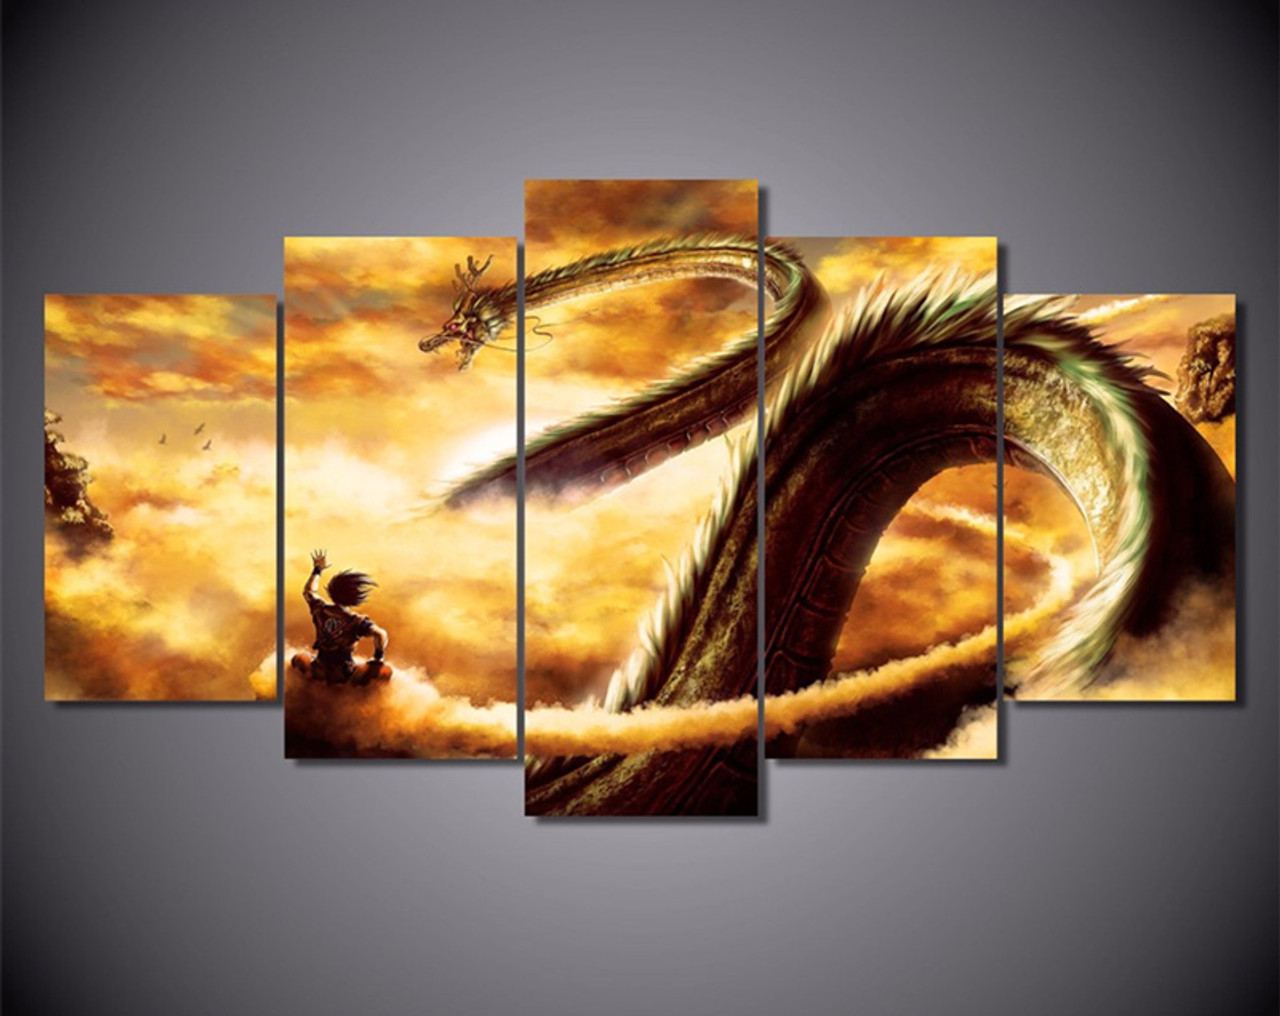 5 Piece Wall Art Canvas Painting Cartoon Dragon Ball Modular Art Picture For Living Room Posters ... & 5 Piece Wall Art Canvas Painting Cartoon Dragon Ball Modular Art ...